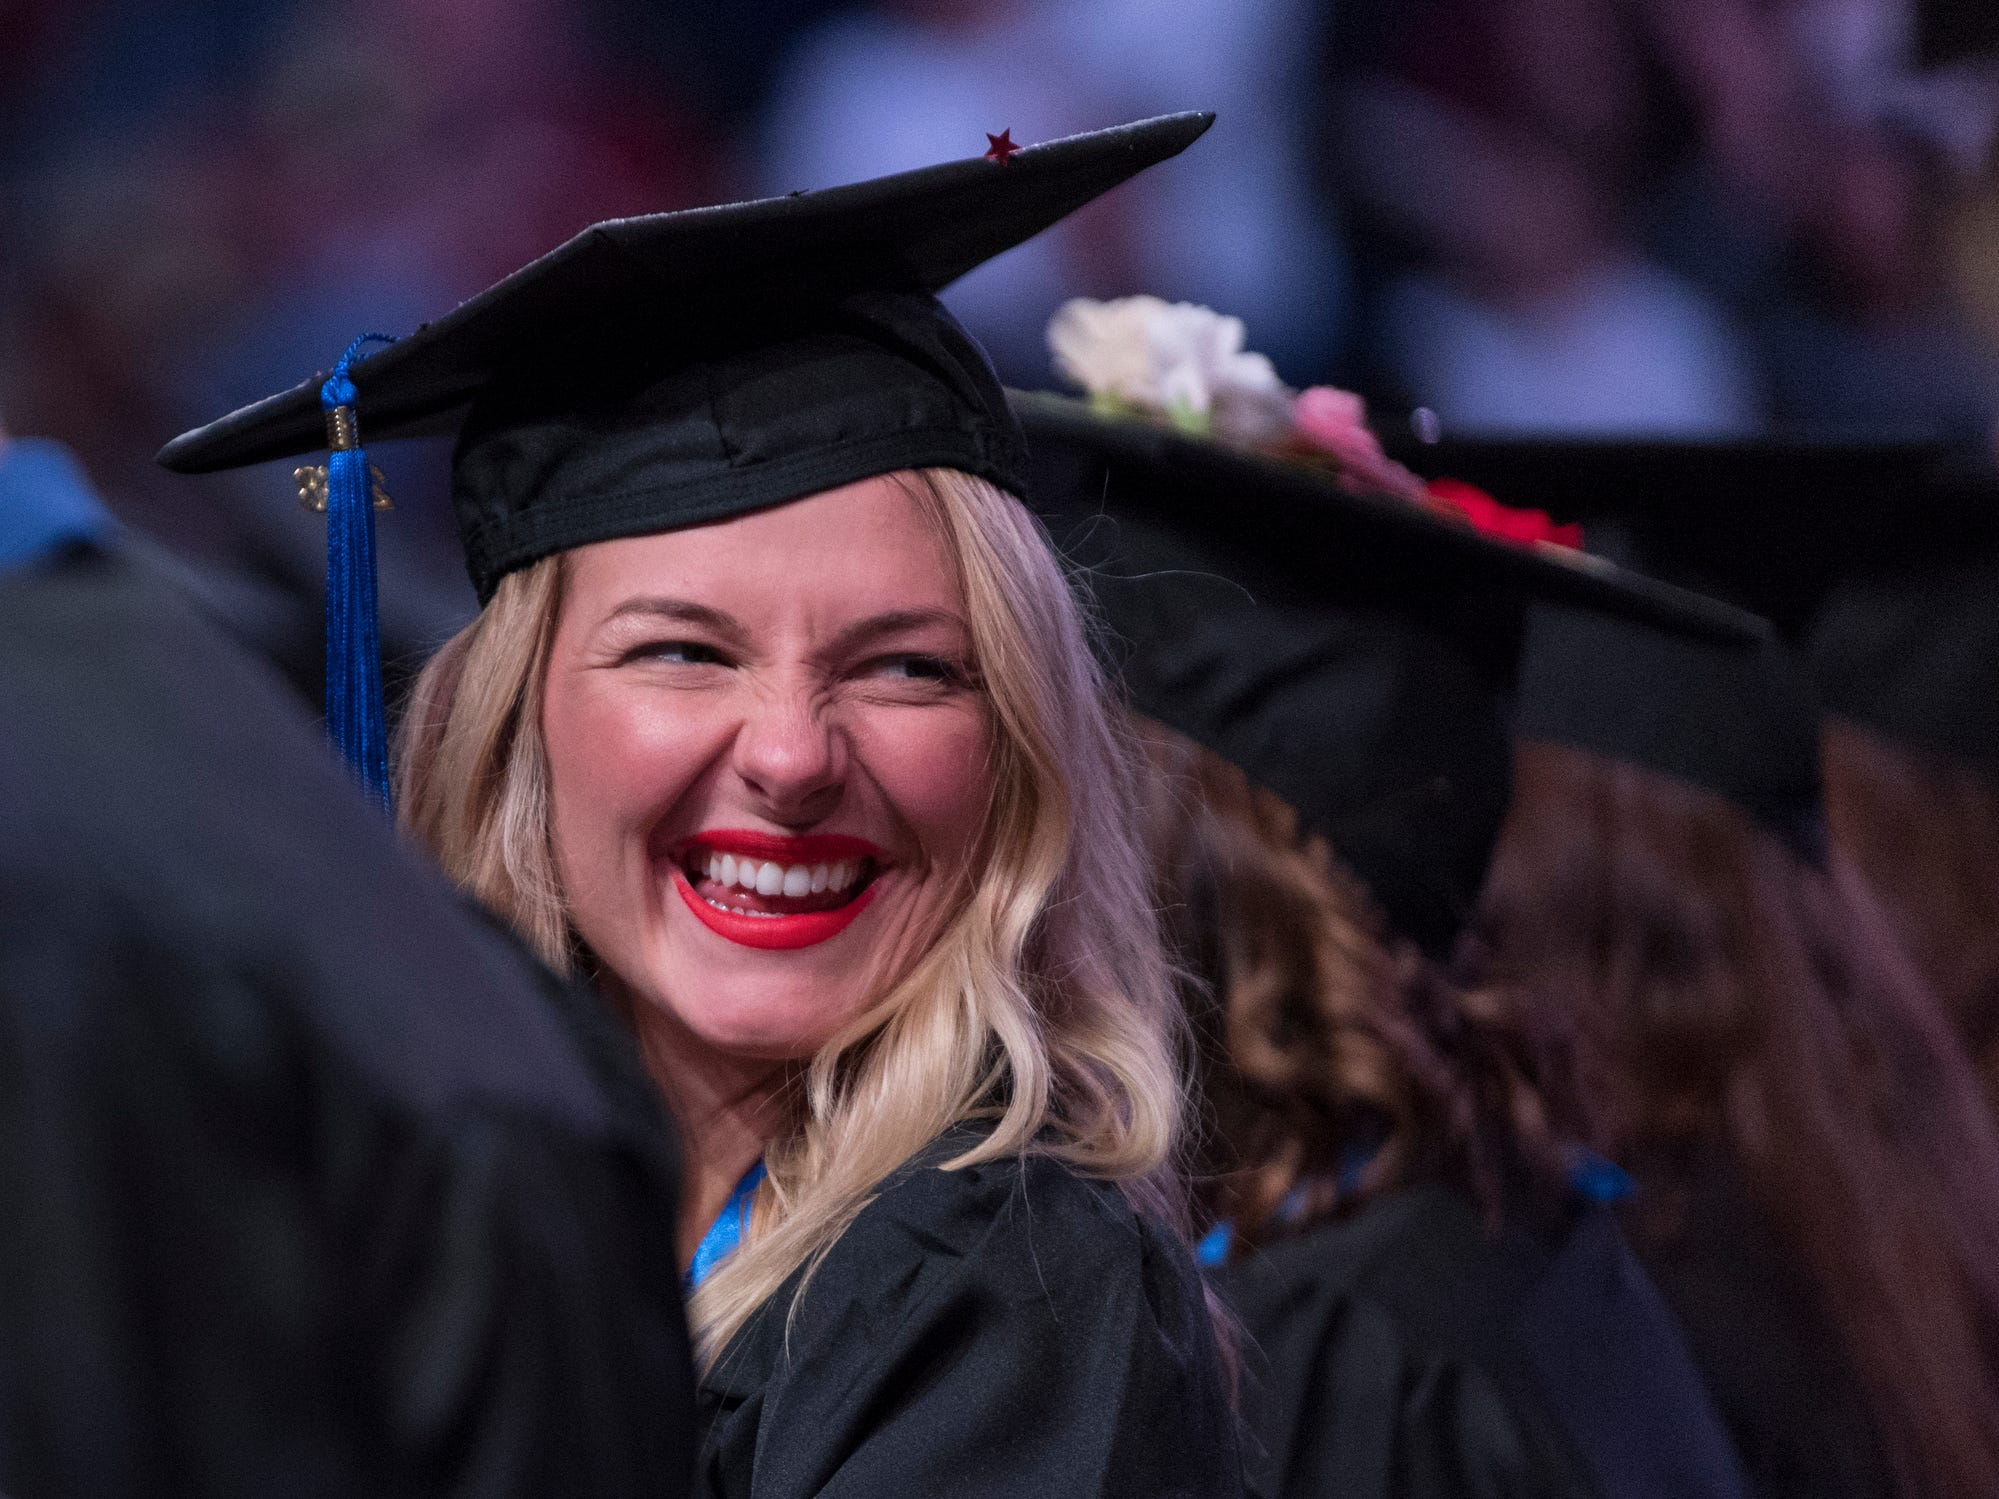 Brittany Curtis of Evansville smiles at her family during the fall commencement ceremony for the University of Southern Indiana's College of Liberal Arts and the Romain College of Business inside the school's Physical Activities Center in Evansville, Ind., Saturday, Dec. 8, 2018. Curtis majored in public relations and advertising and graduated with a Bachelor of Science from the College of Liberal Arts.